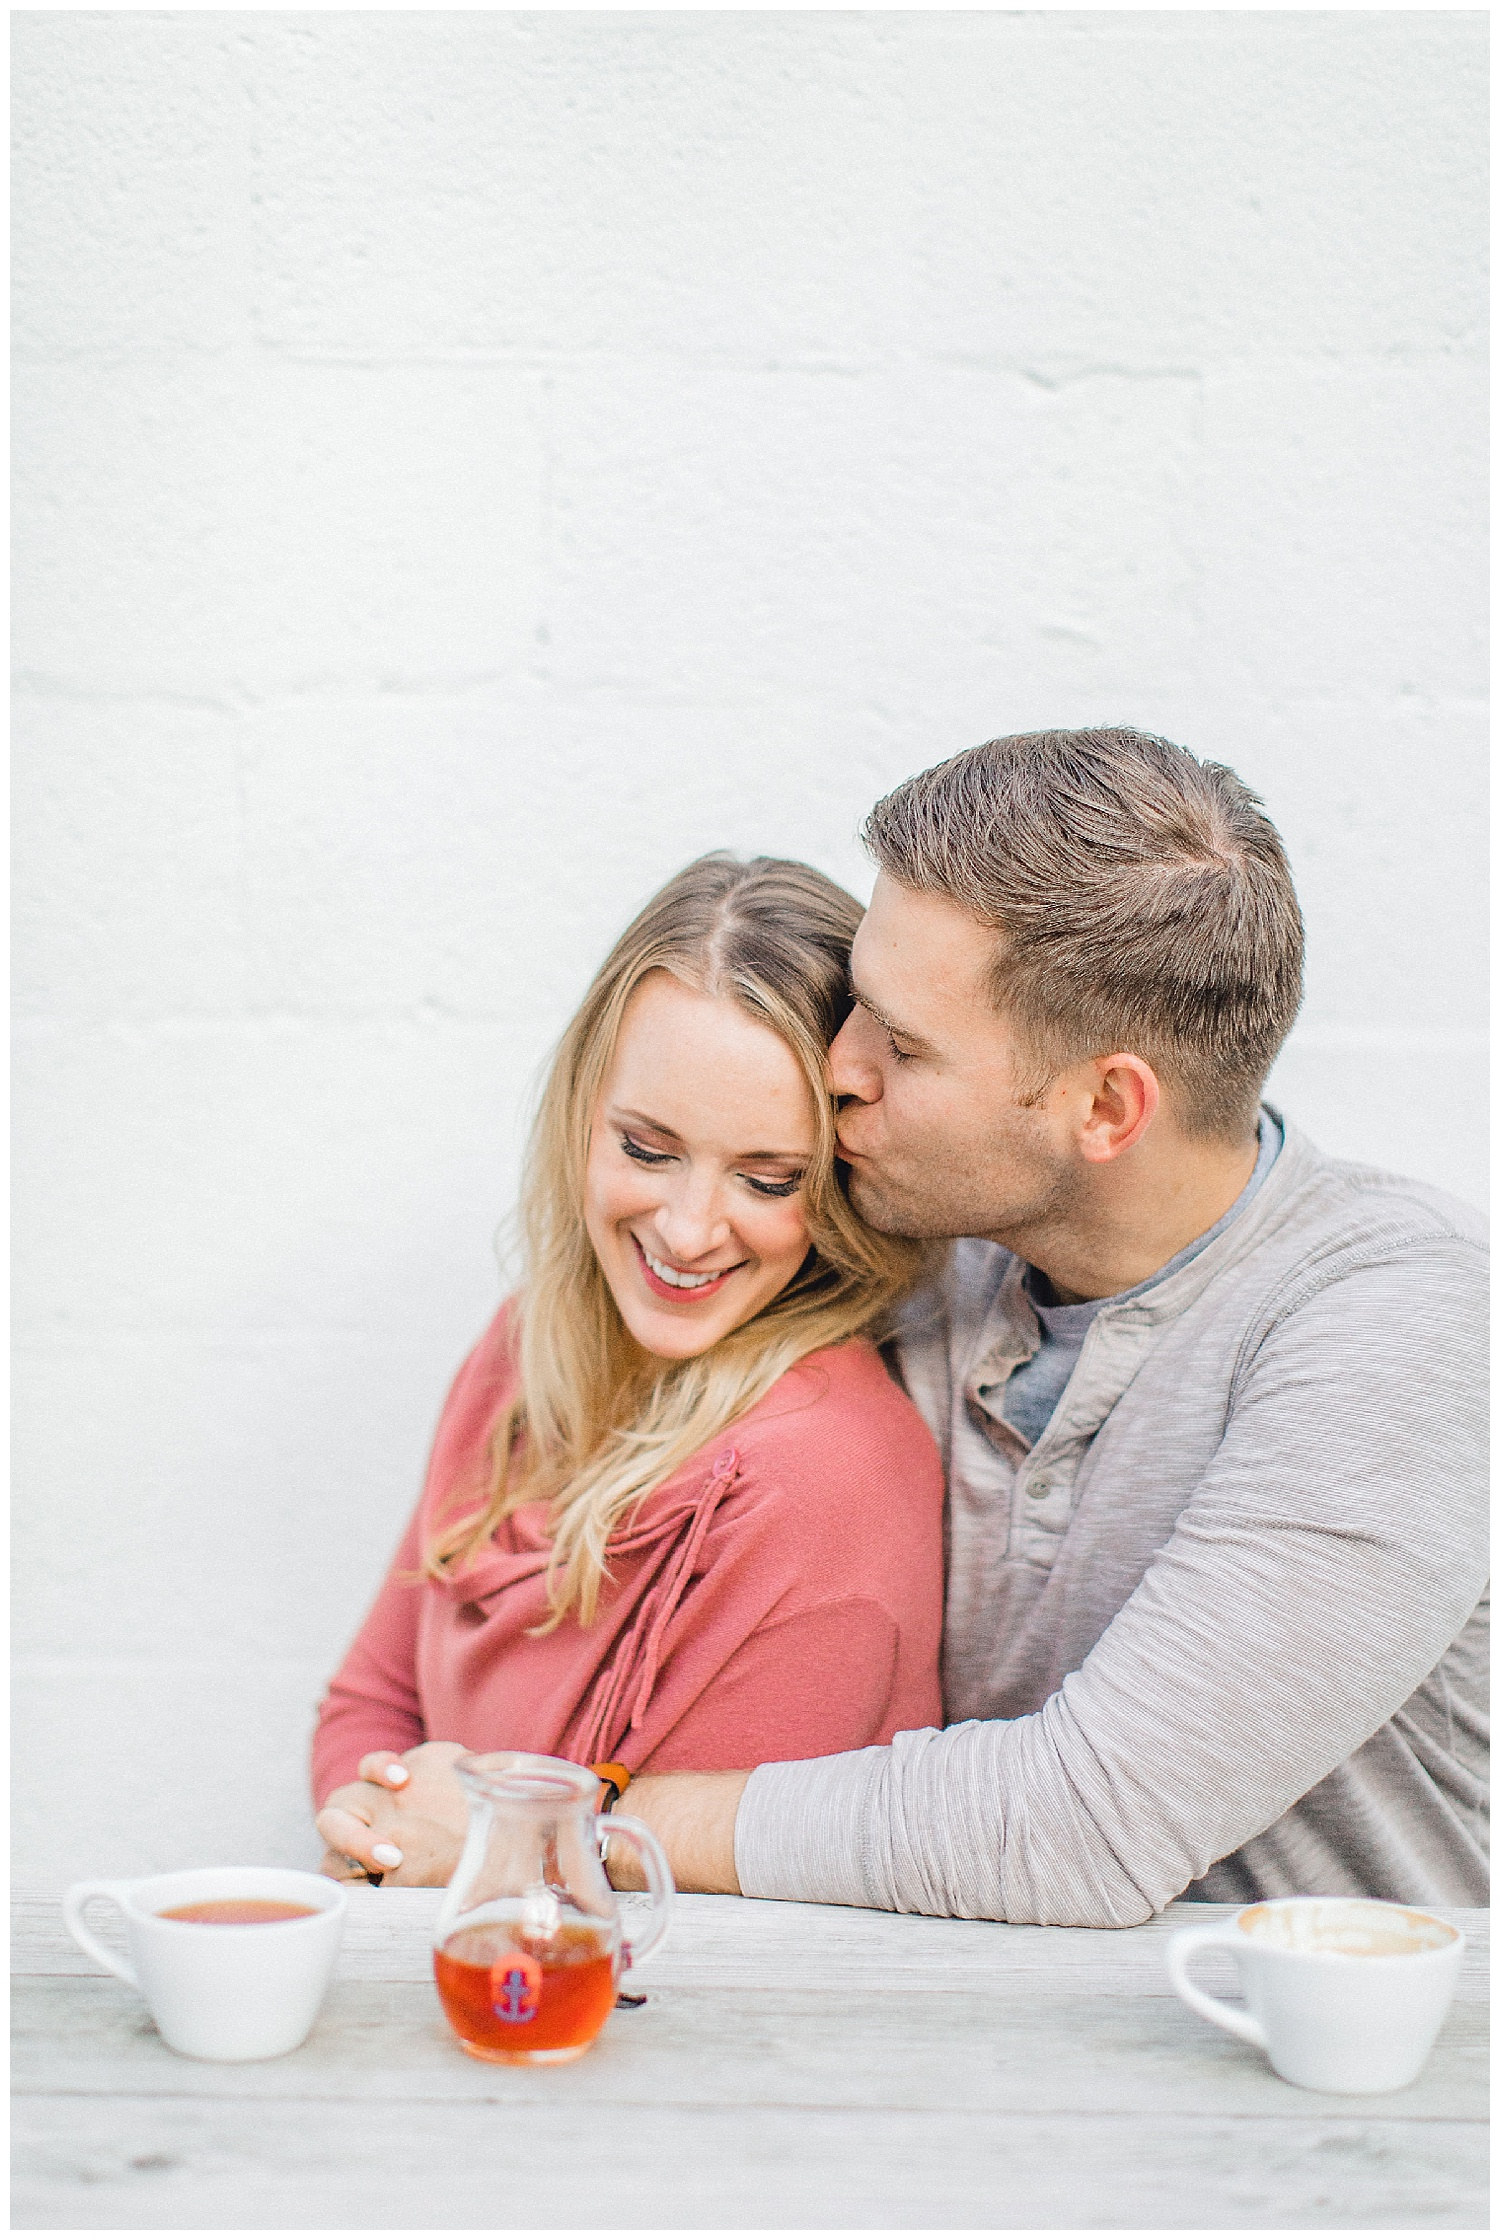 ERC_0979_Downtown Nashville Engagement Session at Barista Parlor | Emma Rose Company Wedding Photographer | Outfit Inspiration for Engagement Session | Kindred Light and Airy Photographer.jpg